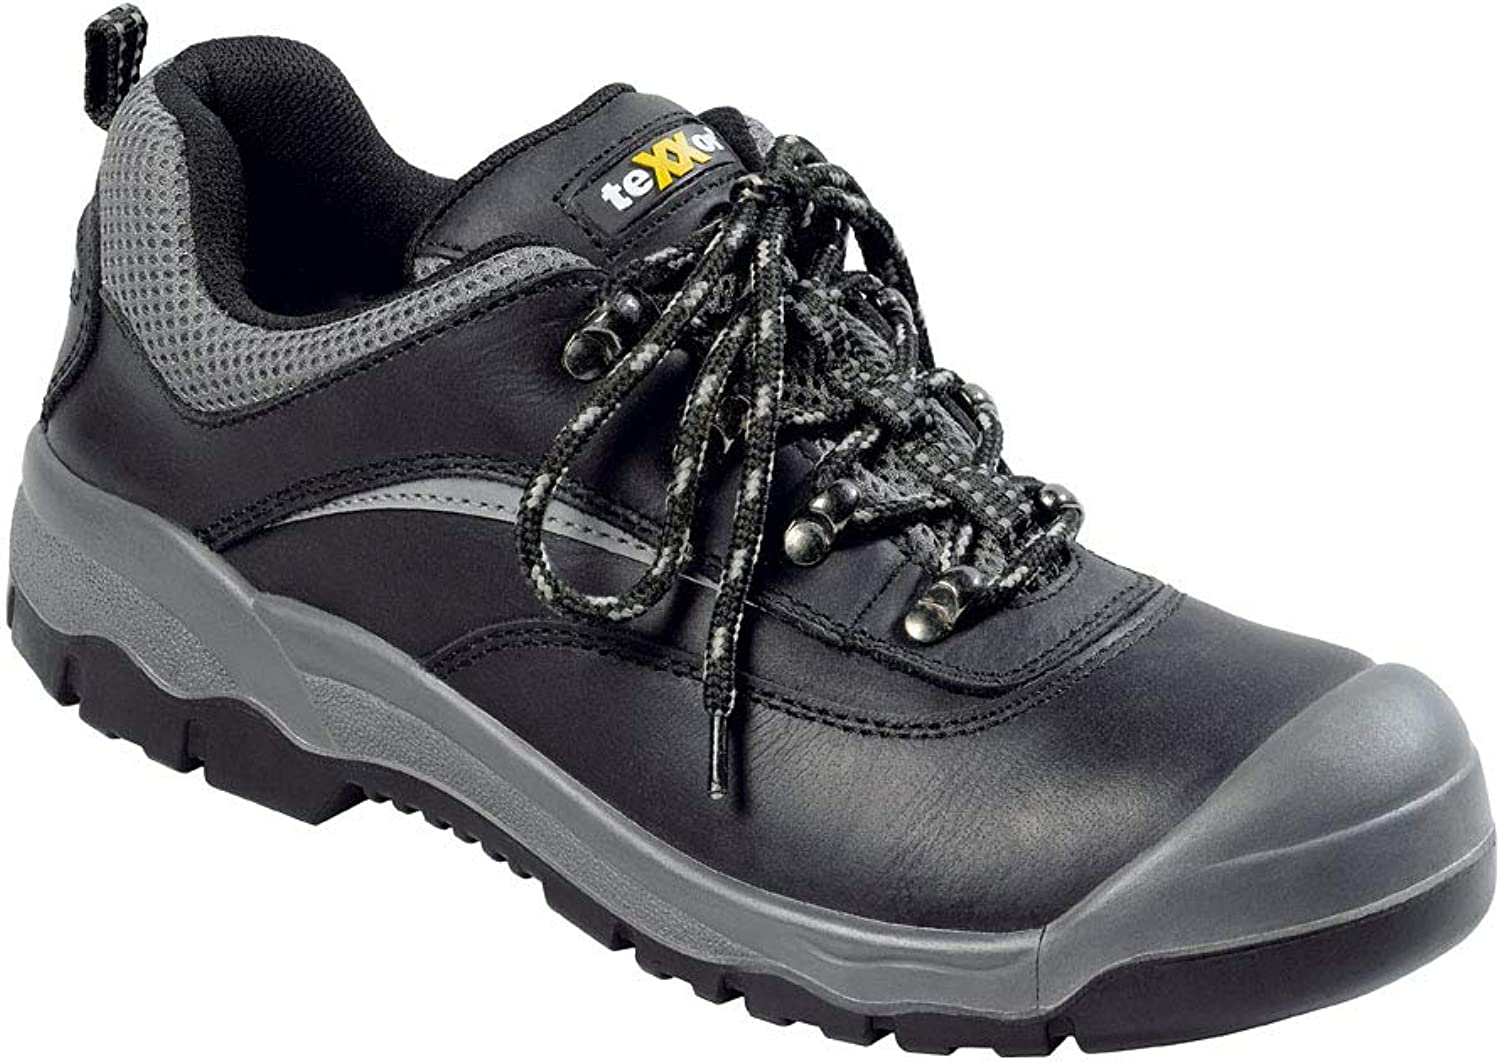 TeXXor 6312-40 Safety shoes  Perpignan  S3, Size 6.5, Black Grey - EN safety certified